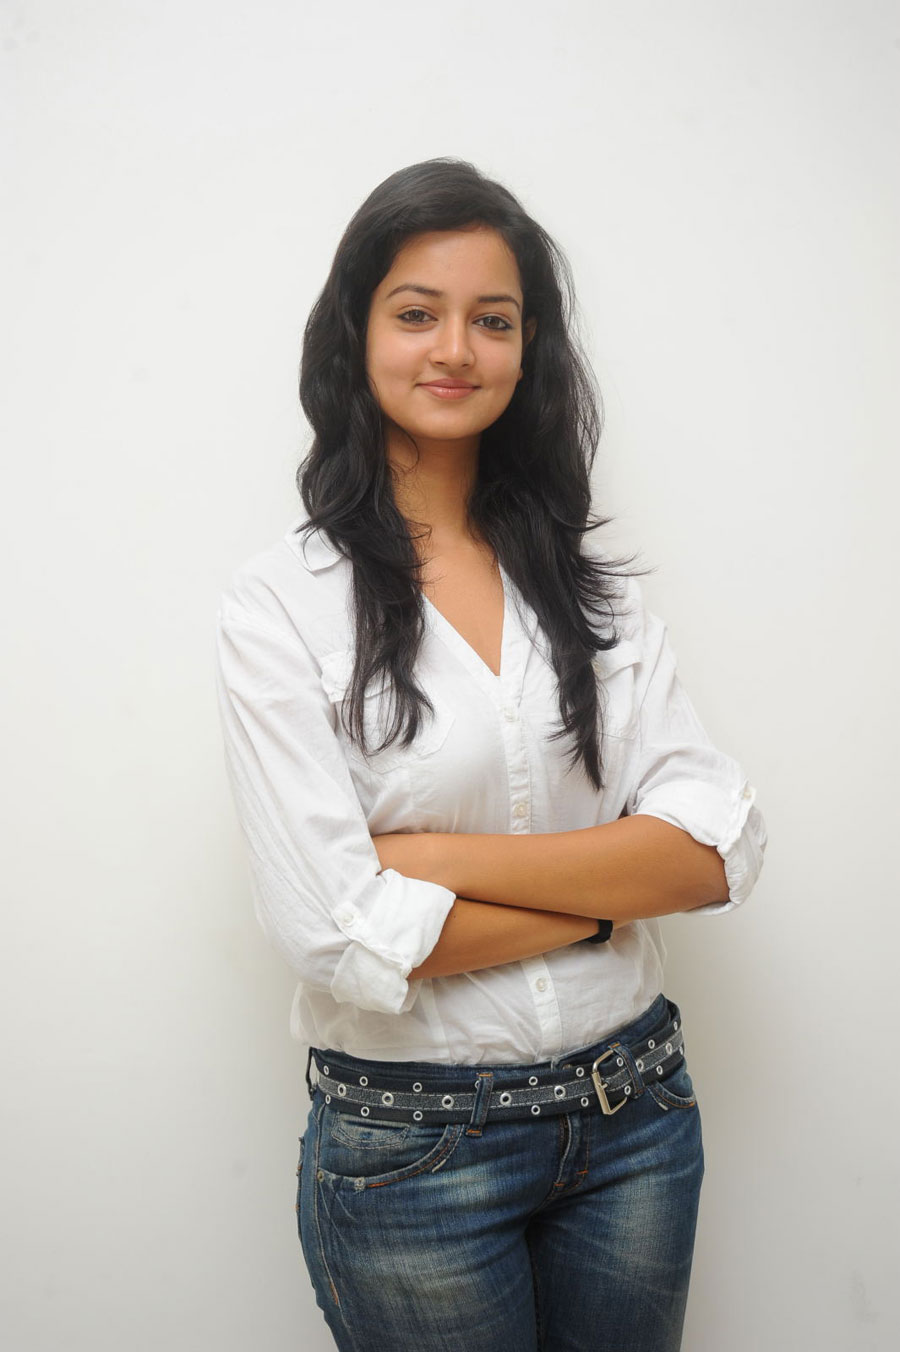 Shanvi Shoot in Adda Press Meet Photo Gallery Sanvi-21